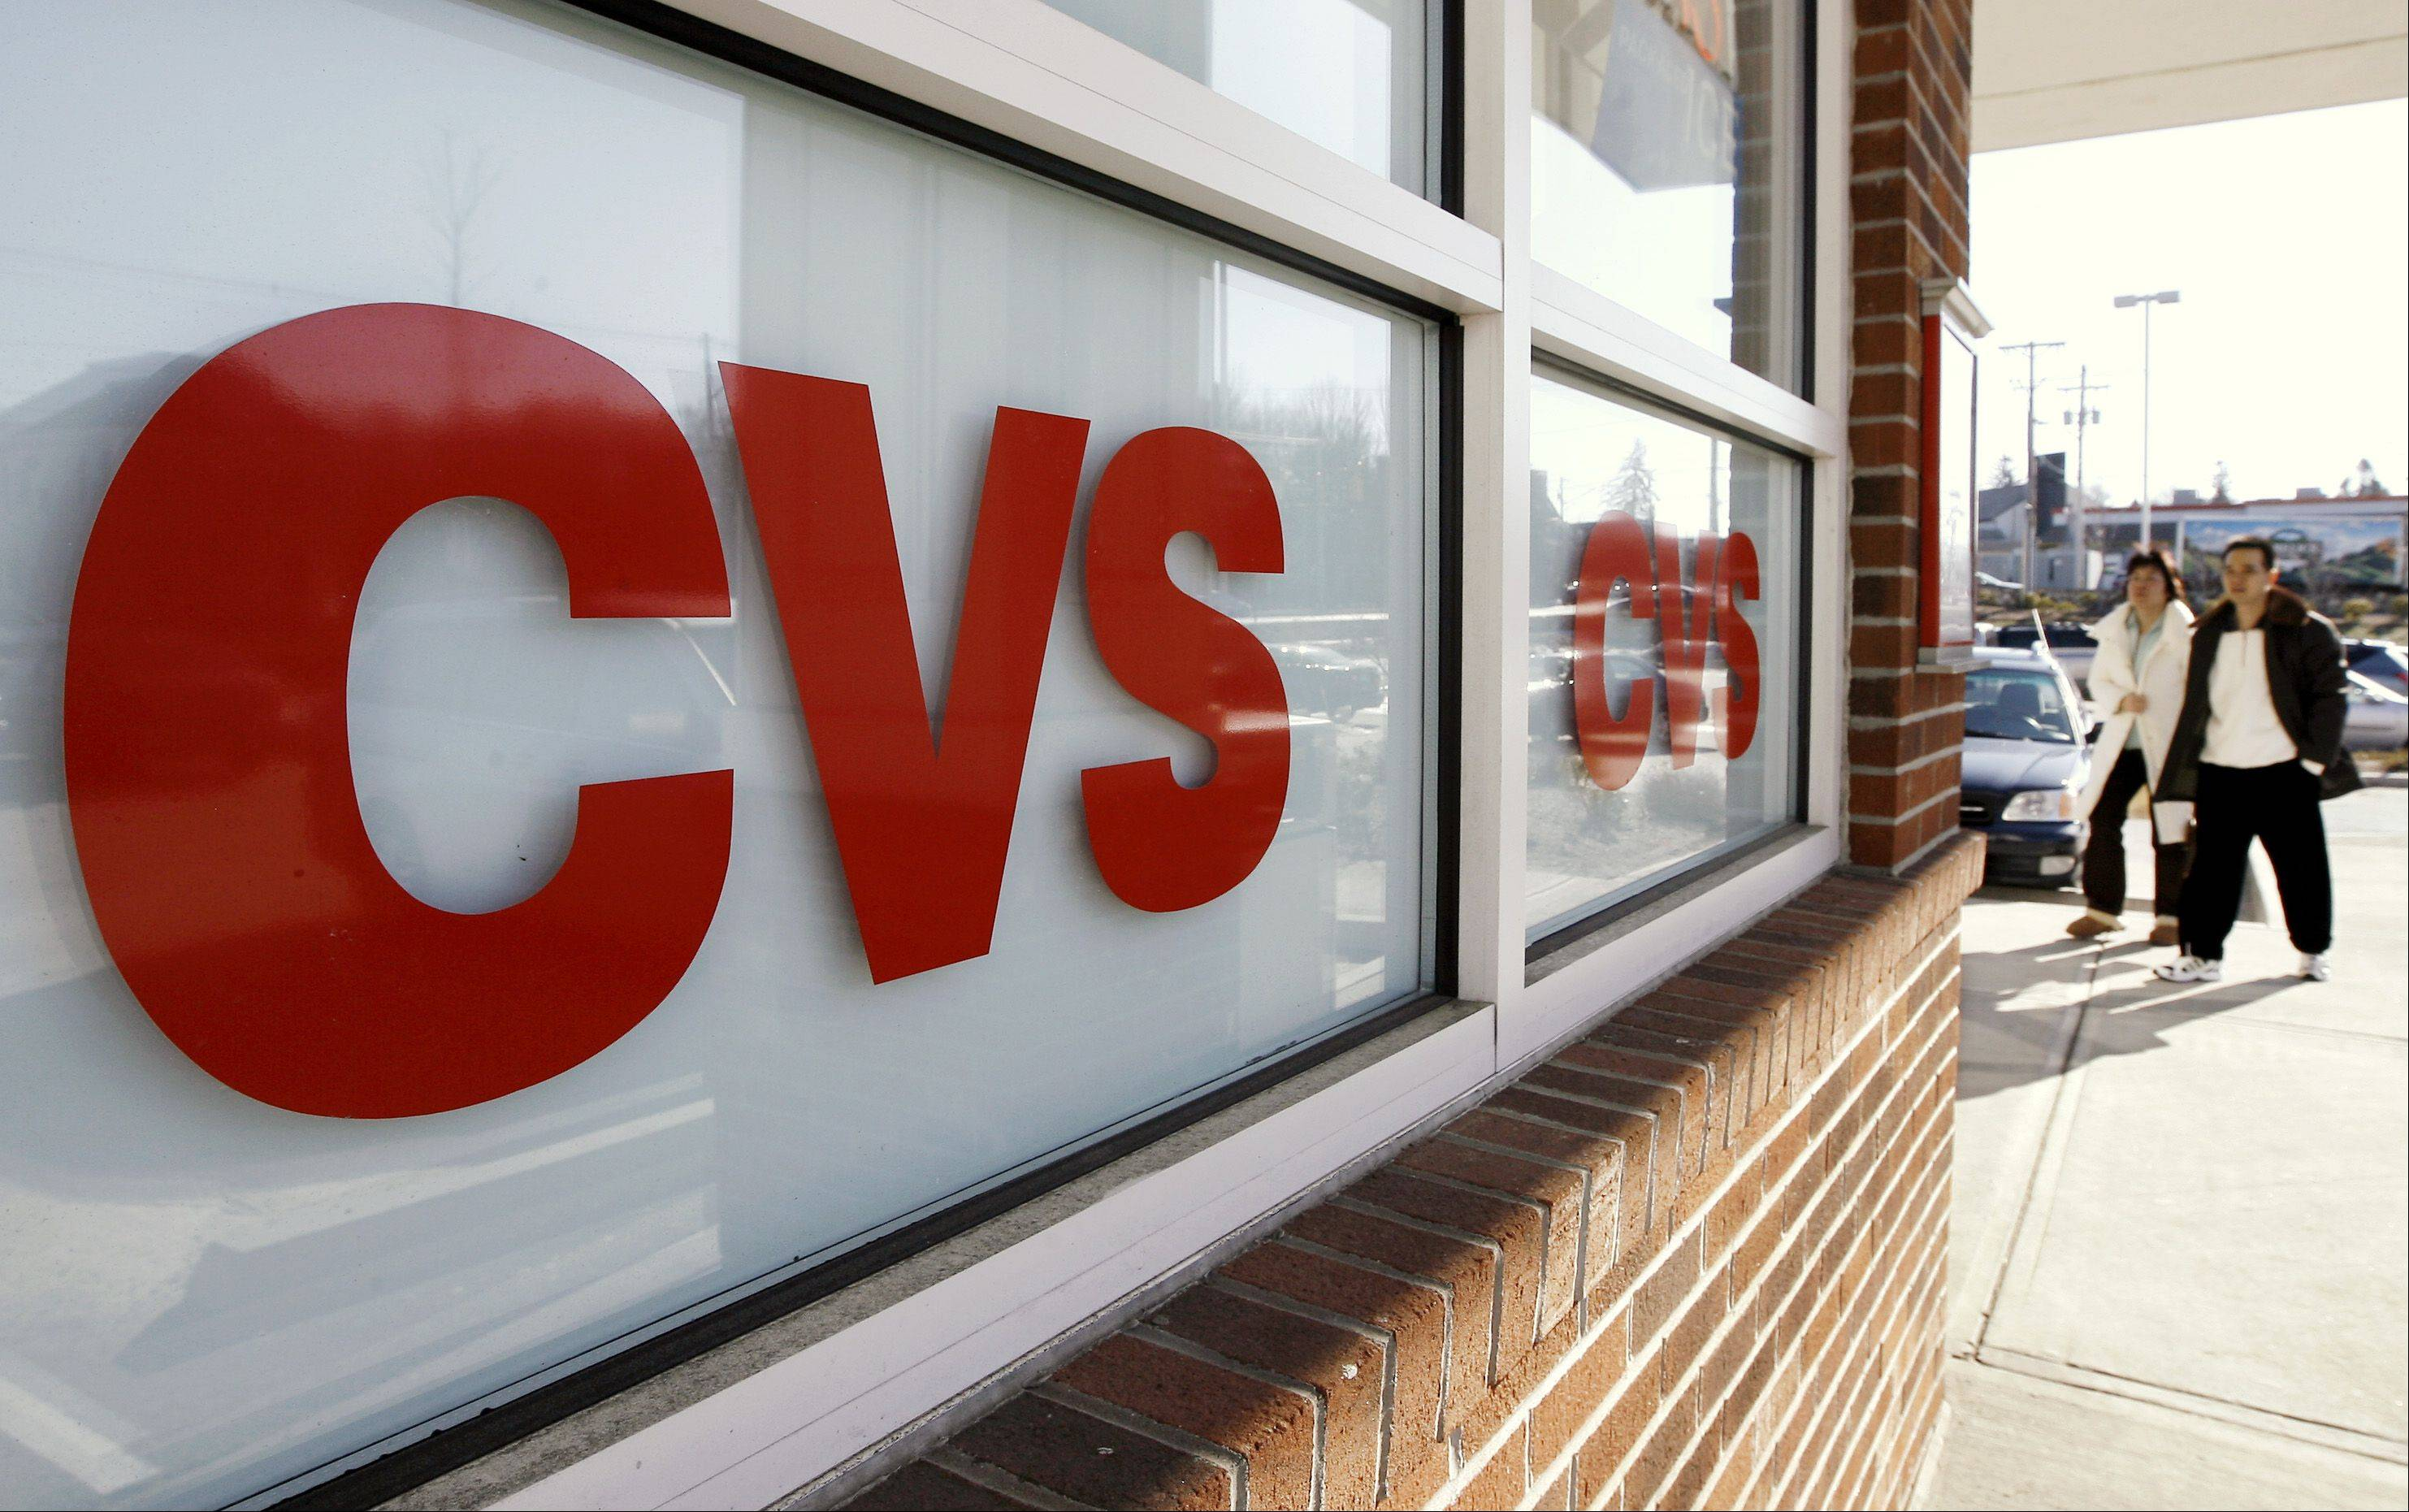 CVS Caremark has finalized a $20 million settlement with the Securities and Exchange Commission over accusations that the company misled investors and used improper accounting to boost its performance several years ago. CVS has mail order and tech operations in Mount Prospect, Northbrook, Bannockburn and Linconshire.